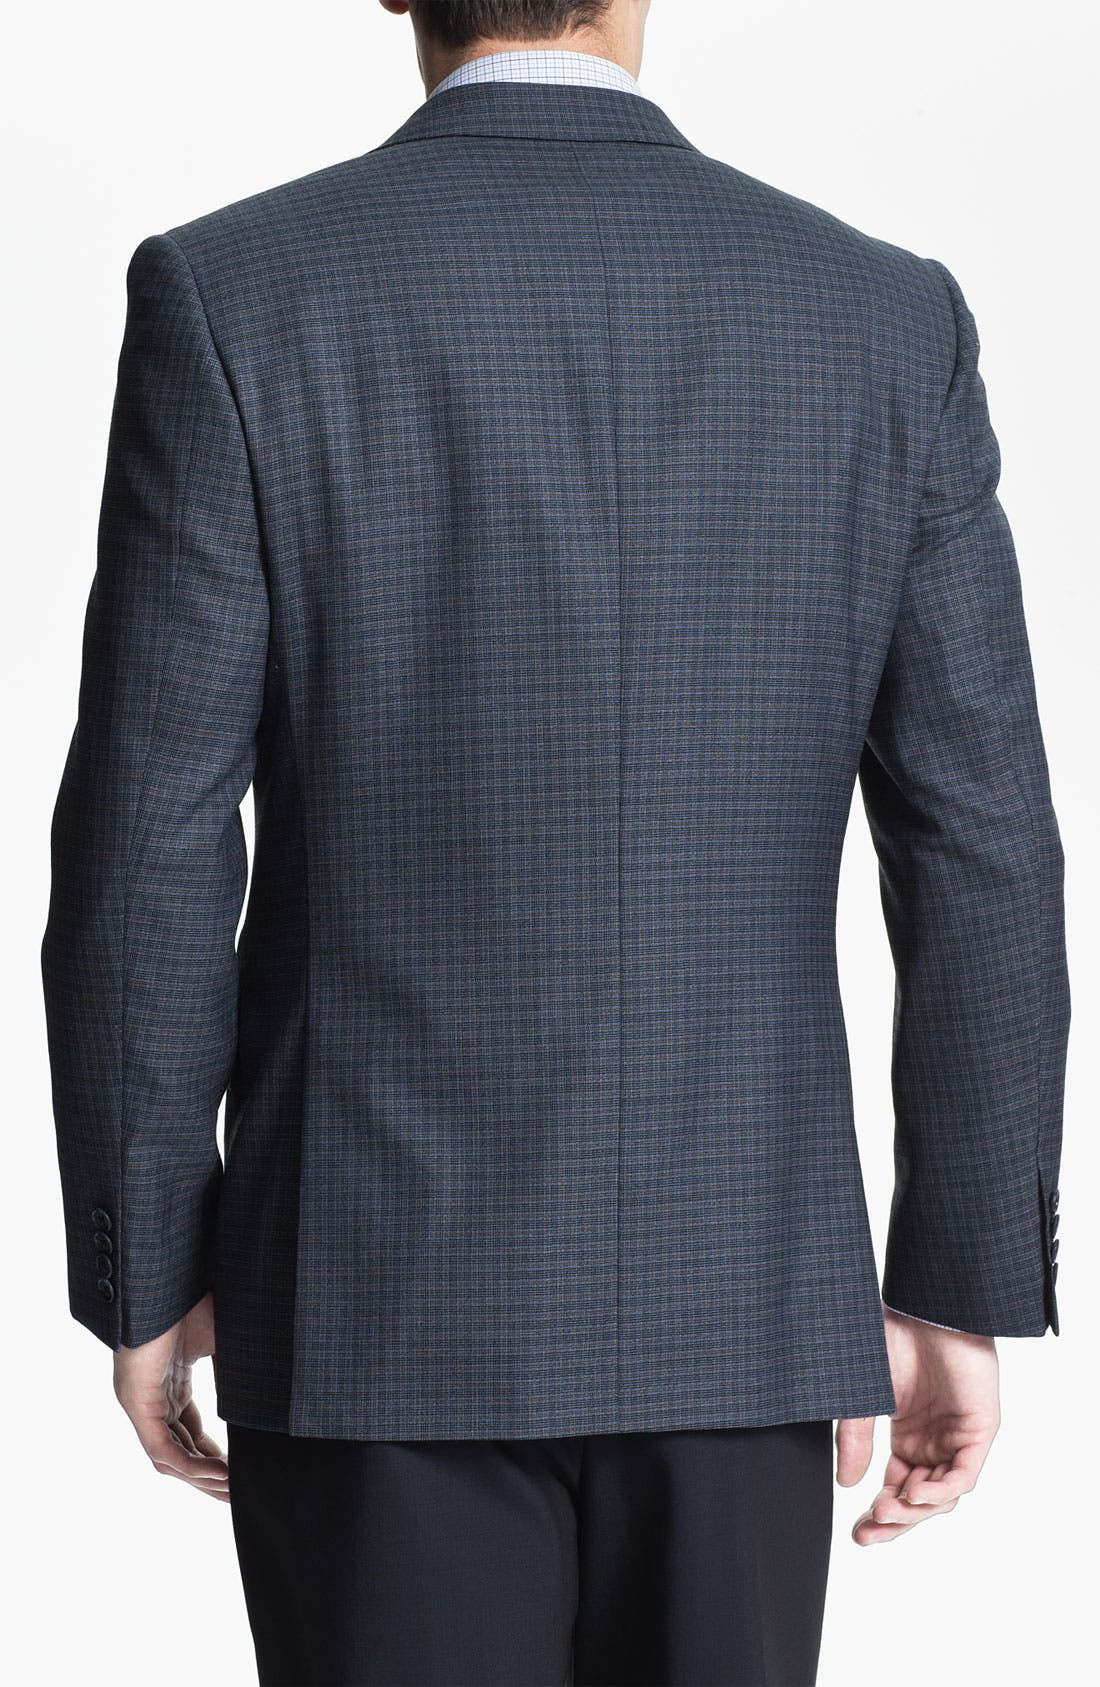 Alternate Image 2  - Joseph Abboud Check Sportcoat